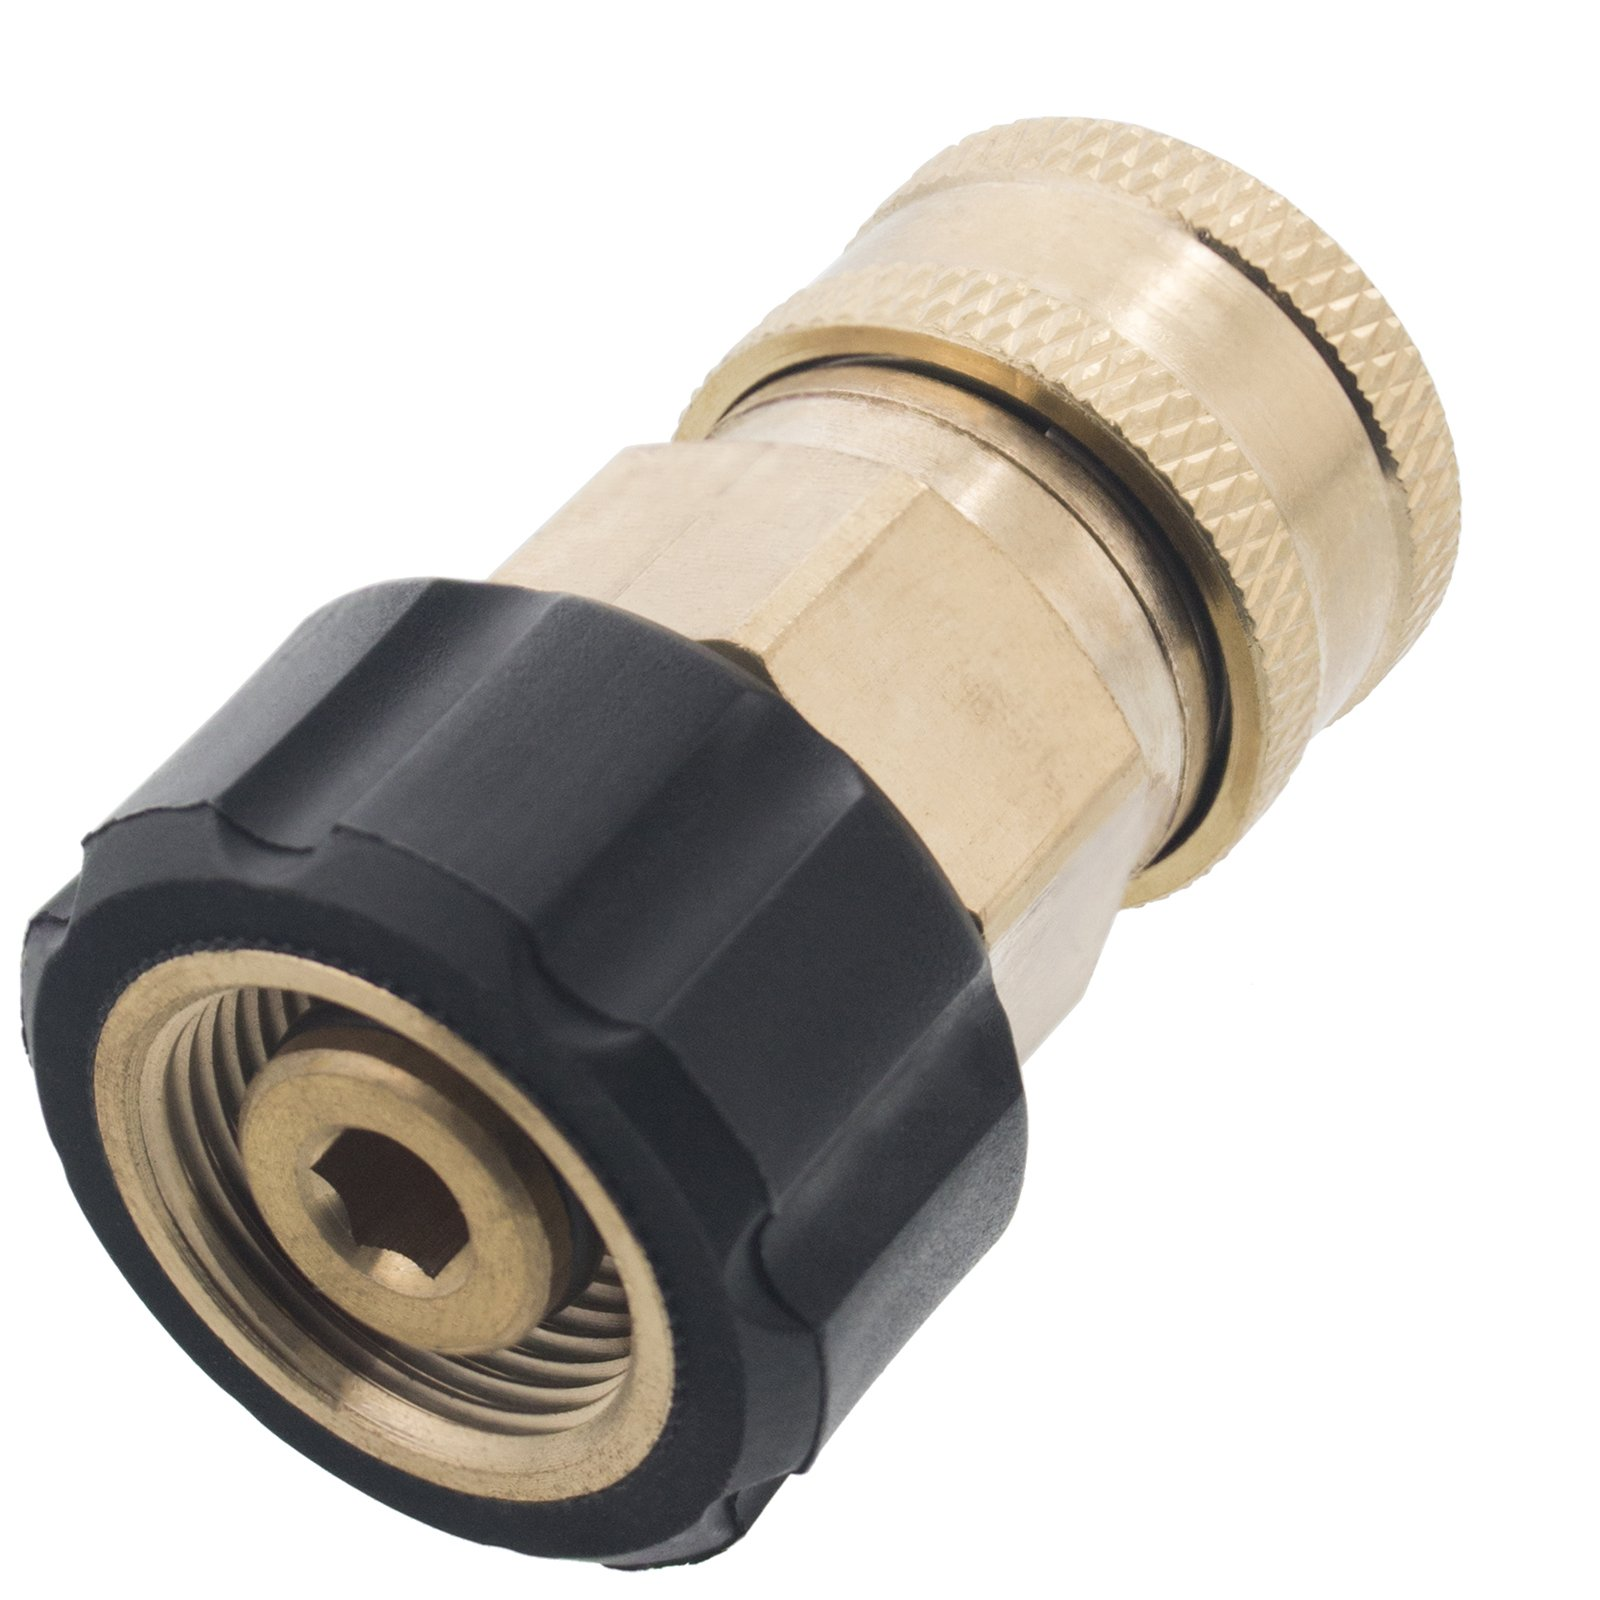 Erie Tools Pressure Washer 3/8 Female NPT to M22 Quick Connect Socket Coupler 14 mm